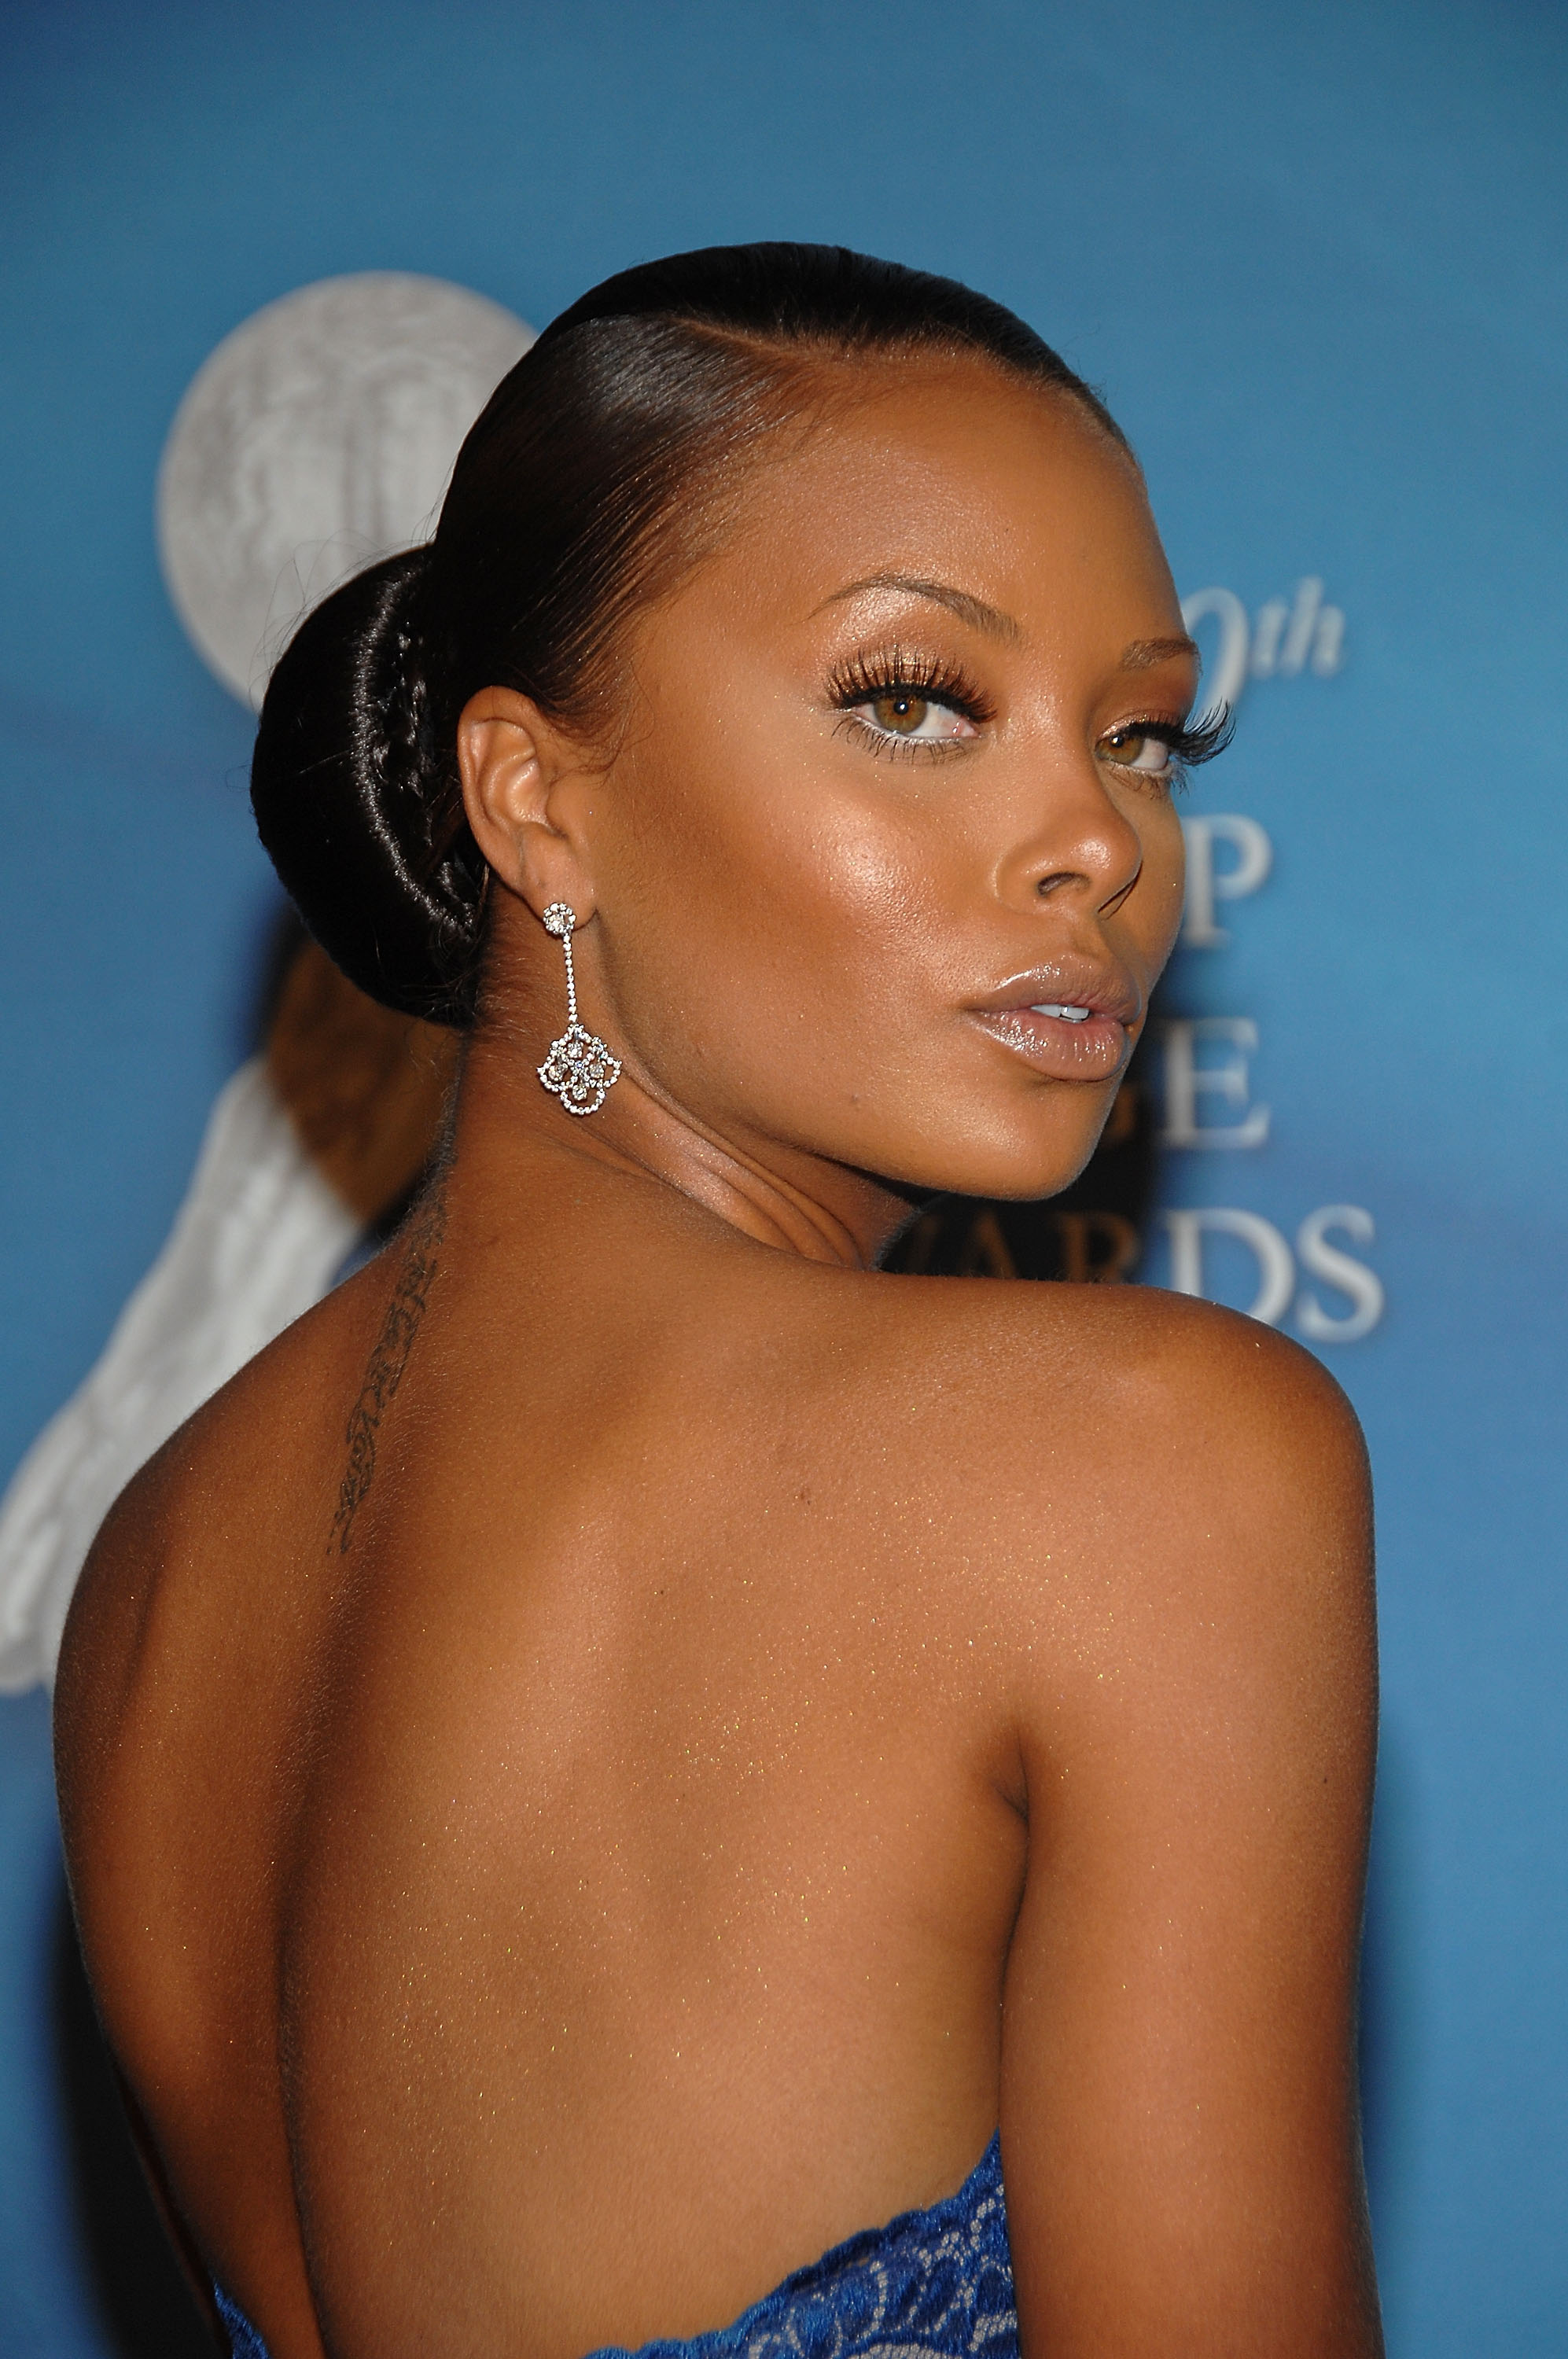 Top model in action eva marcille where are the models of for Top mobel